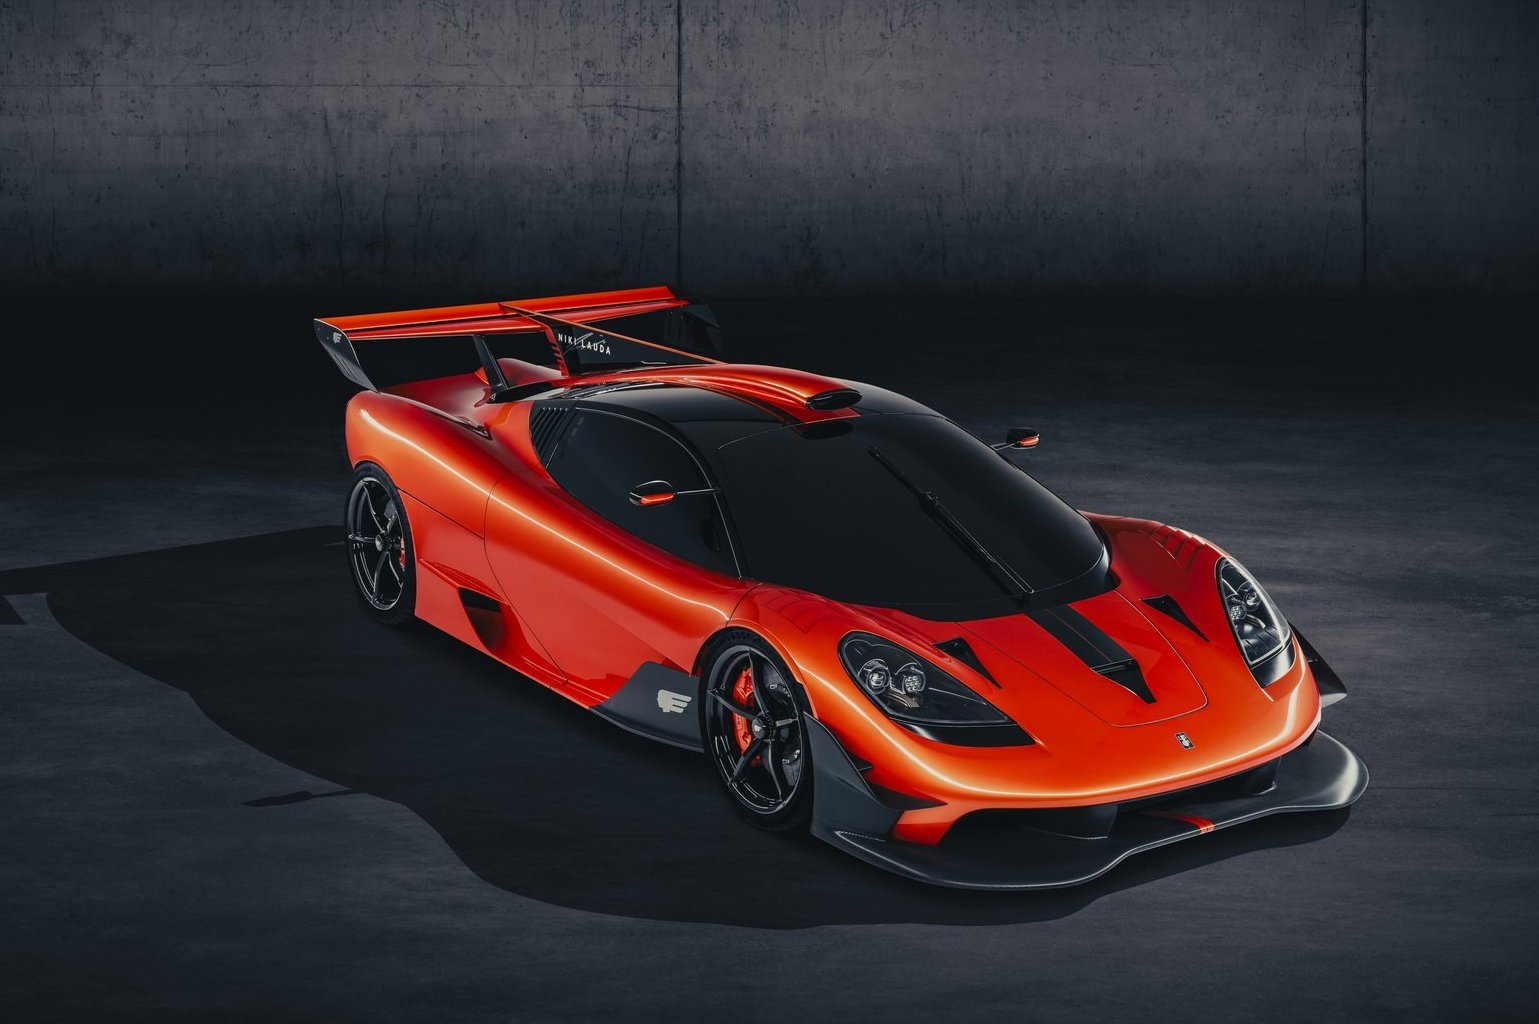 Gordon Murray T.50s track beast named in honour of Niki Lauda